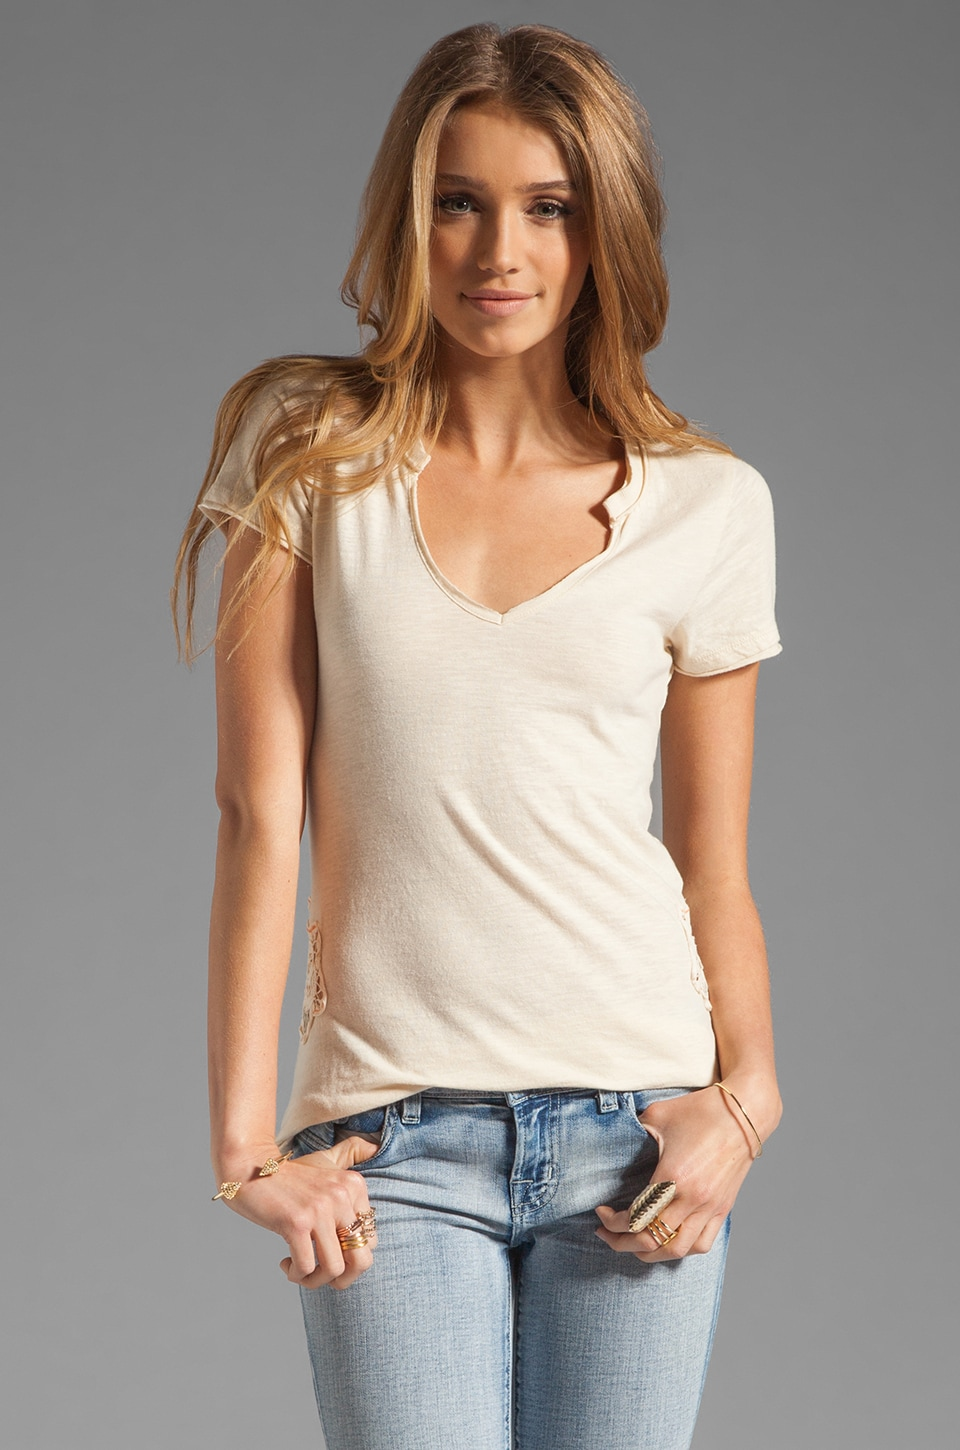 Free People Racer Battenburg Tee in Ivory